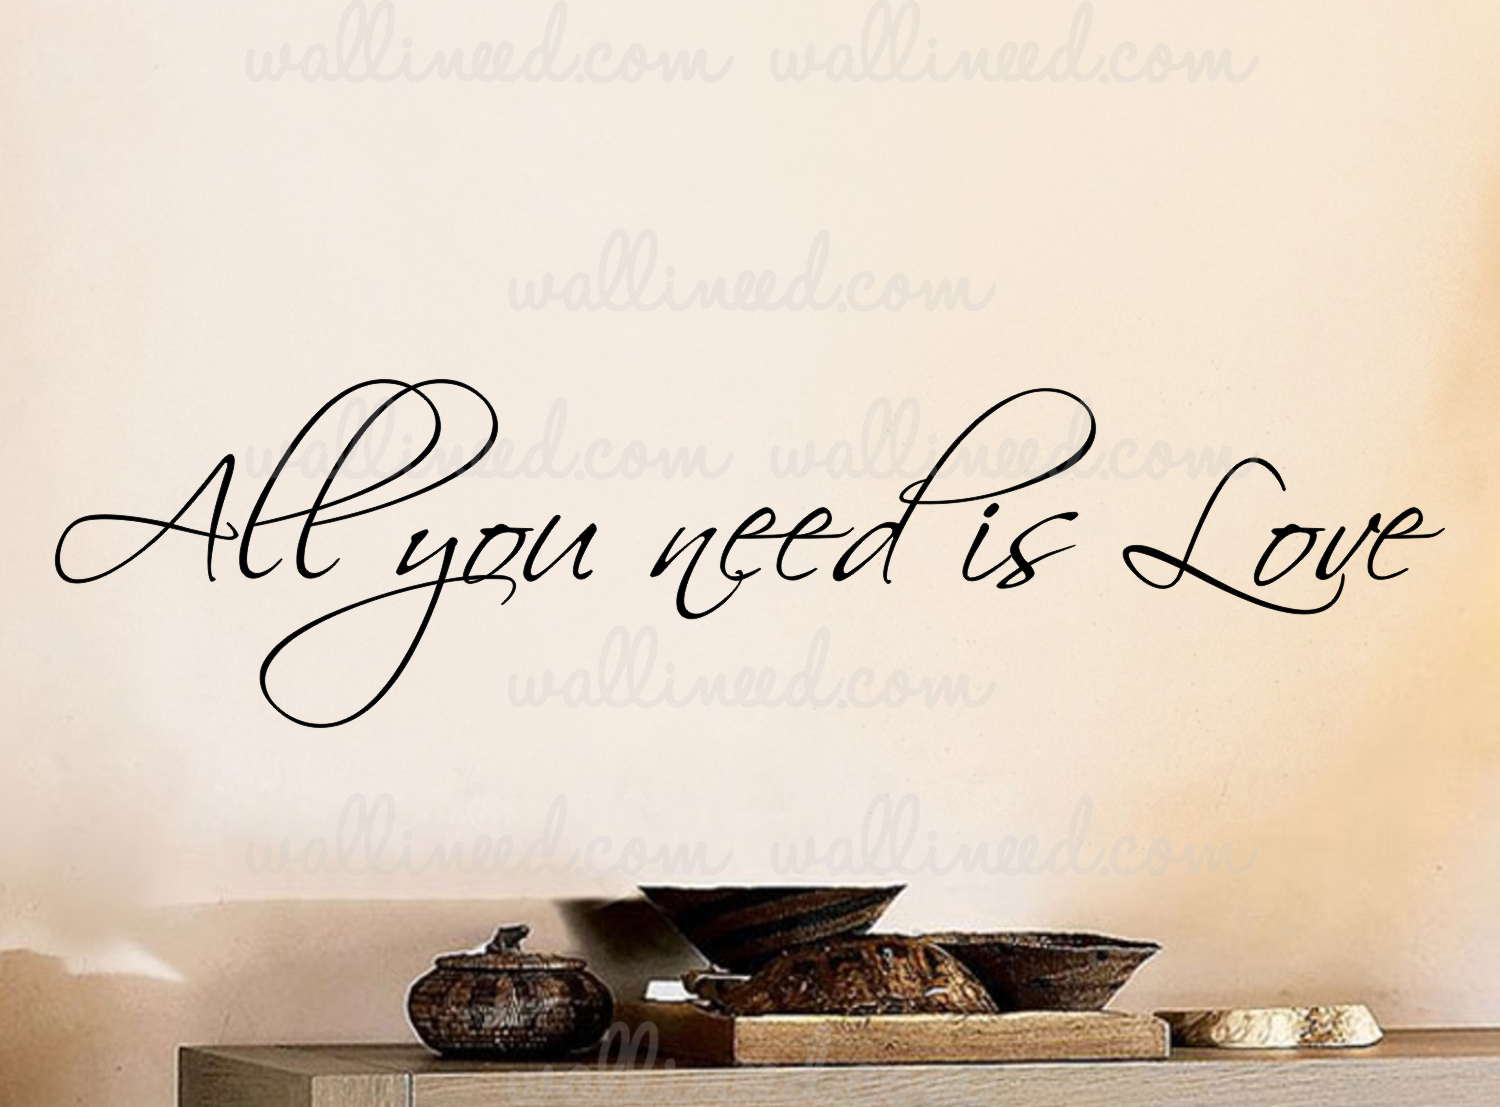 All you need is love wall decal vinyl art quote sticker all you need is love amipublicfo Choice Image